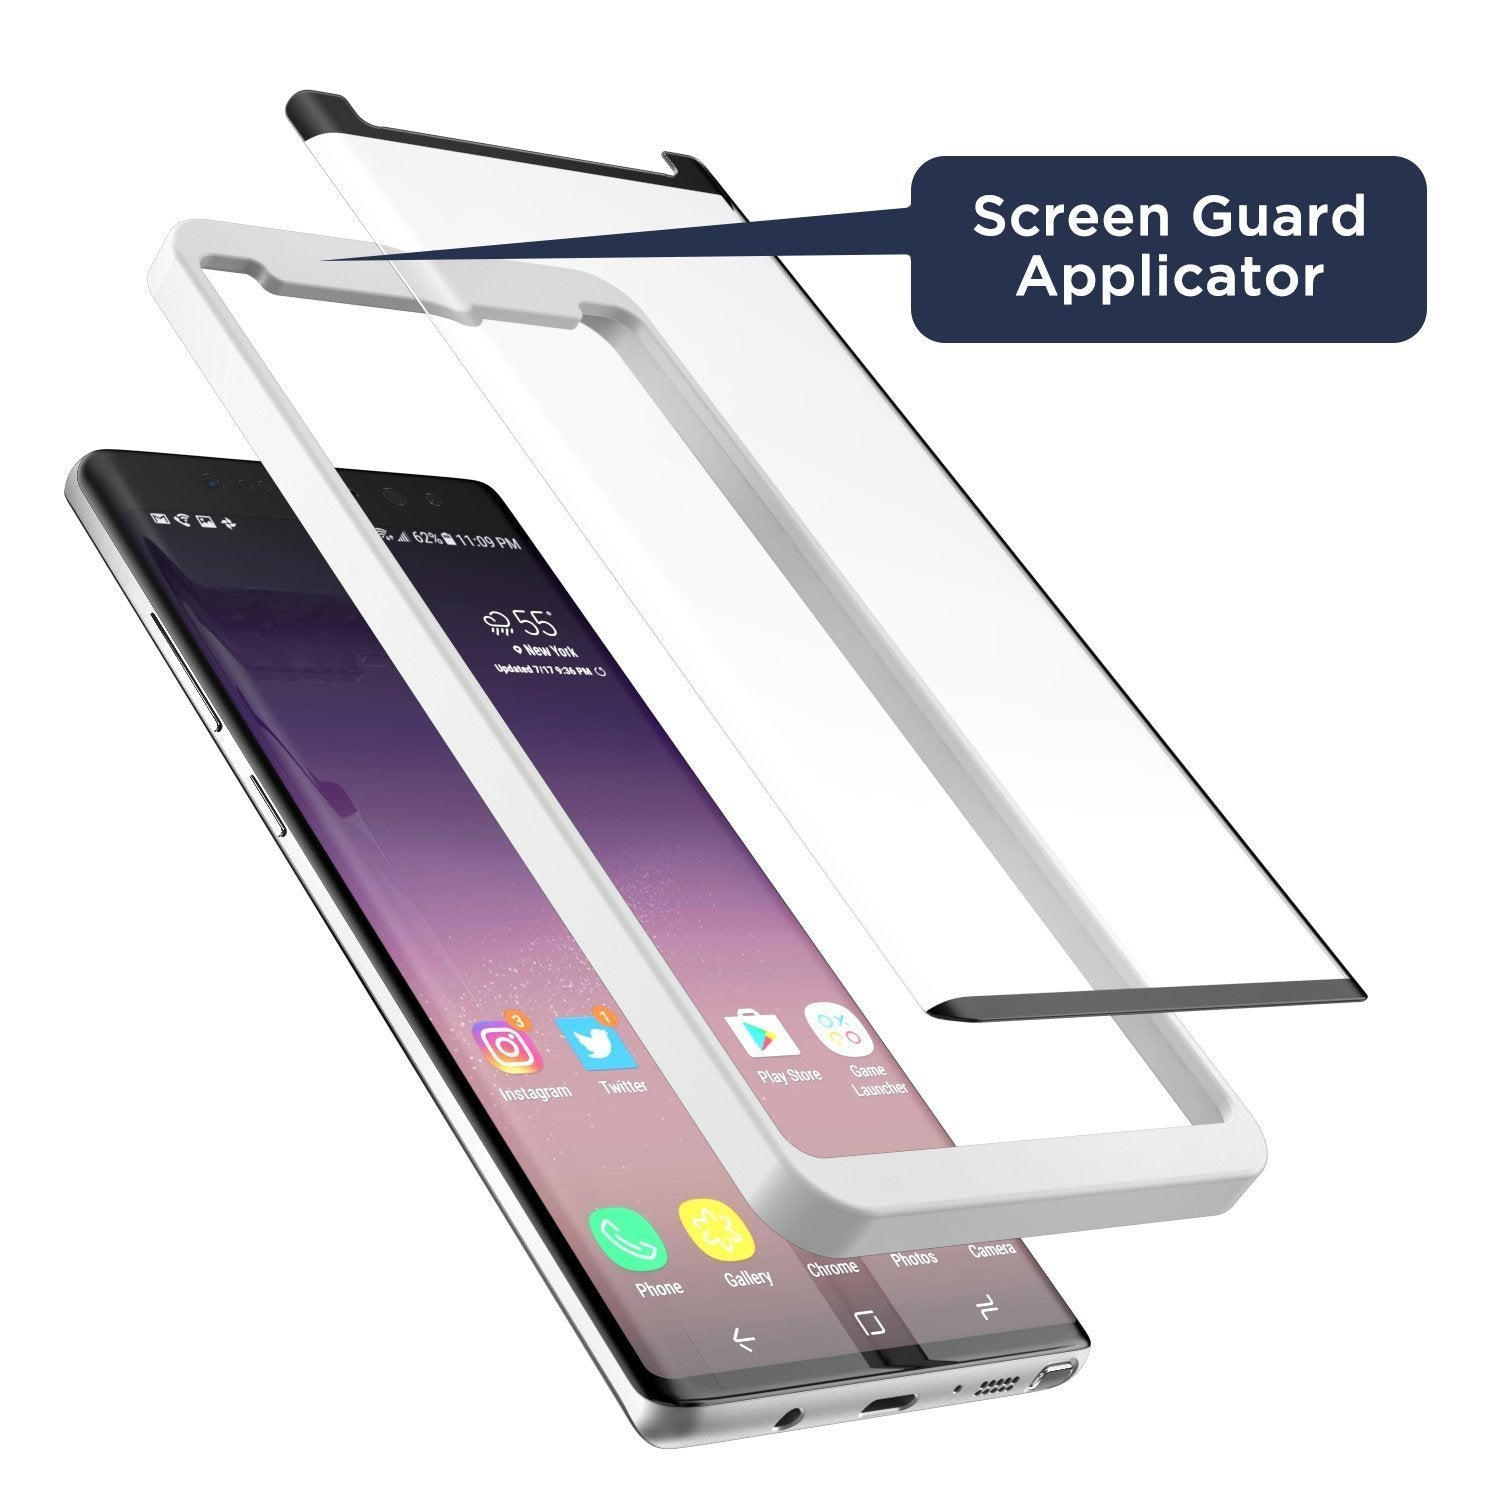 [Case compatible] Galaxy Note 8 Tempered Glass Screen Protector, MagGLASS XT90 Reinforced Screen Guard w/ Pixel Grid Technology (Scratchproof / Shatterproof) (Includes Precision Applicator)